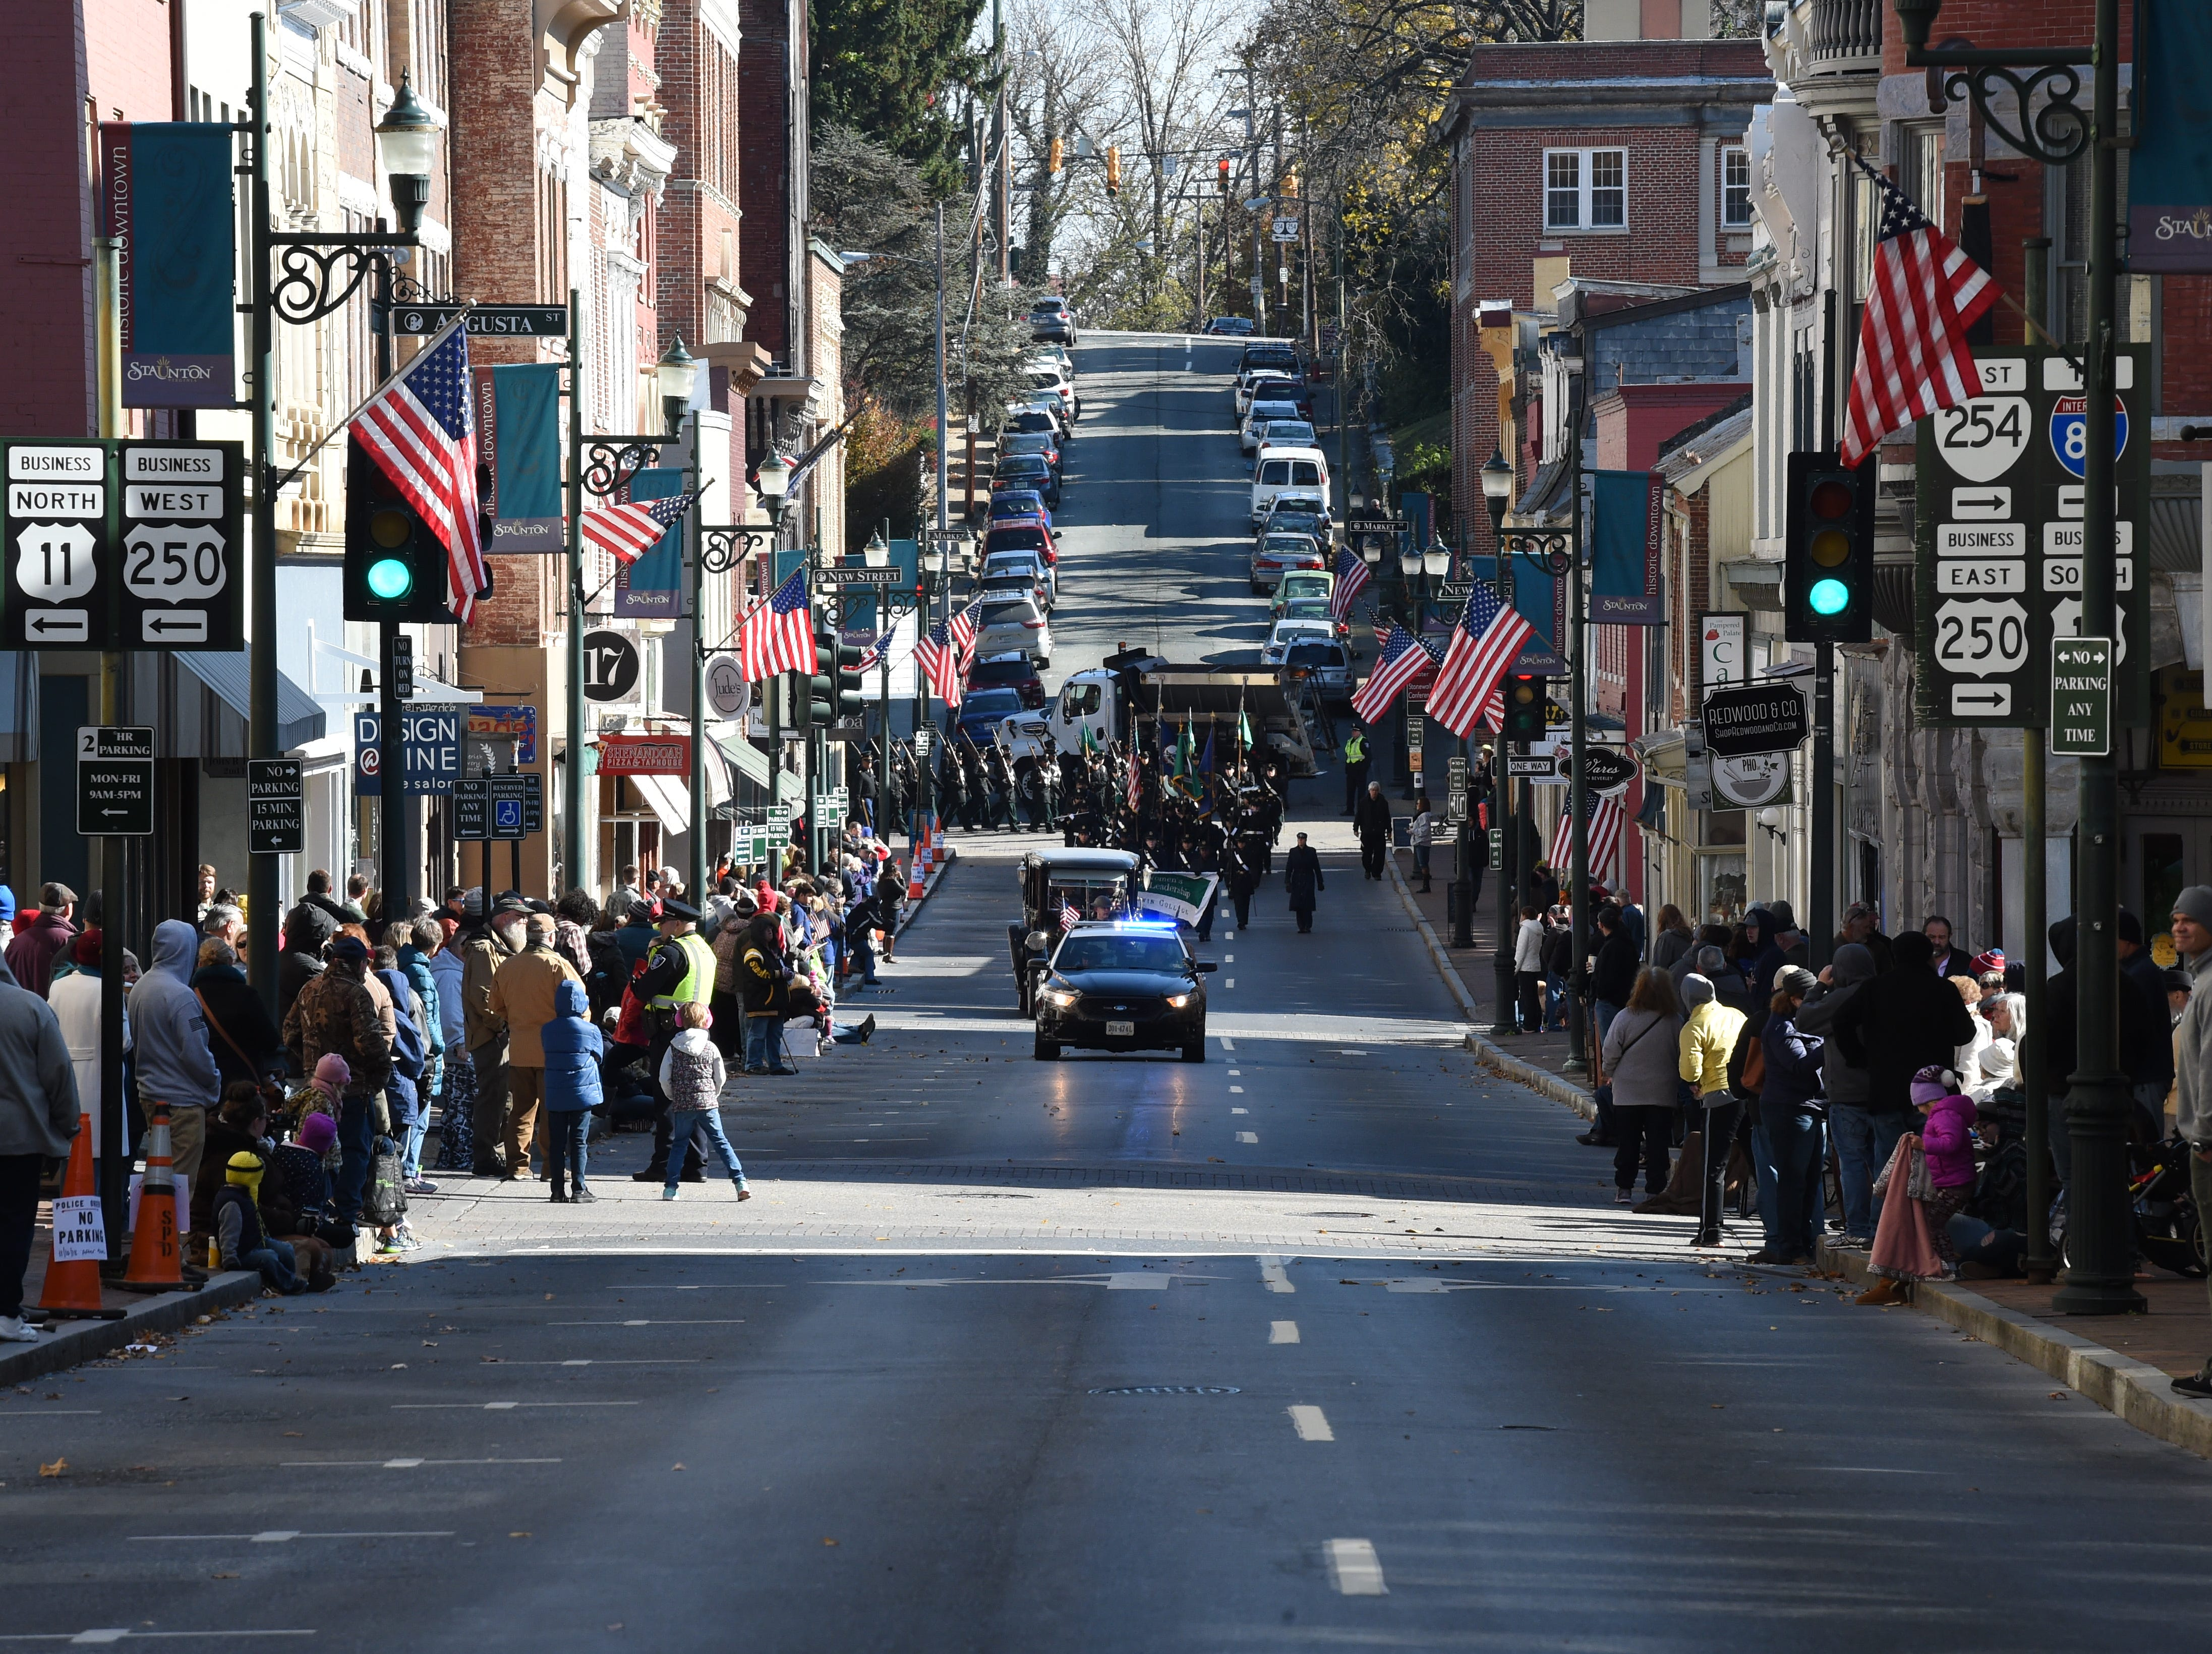 Scenes from the annual Veterans Day Parade on Saturday, November 10, 2018 in downtown Staunton, Va.